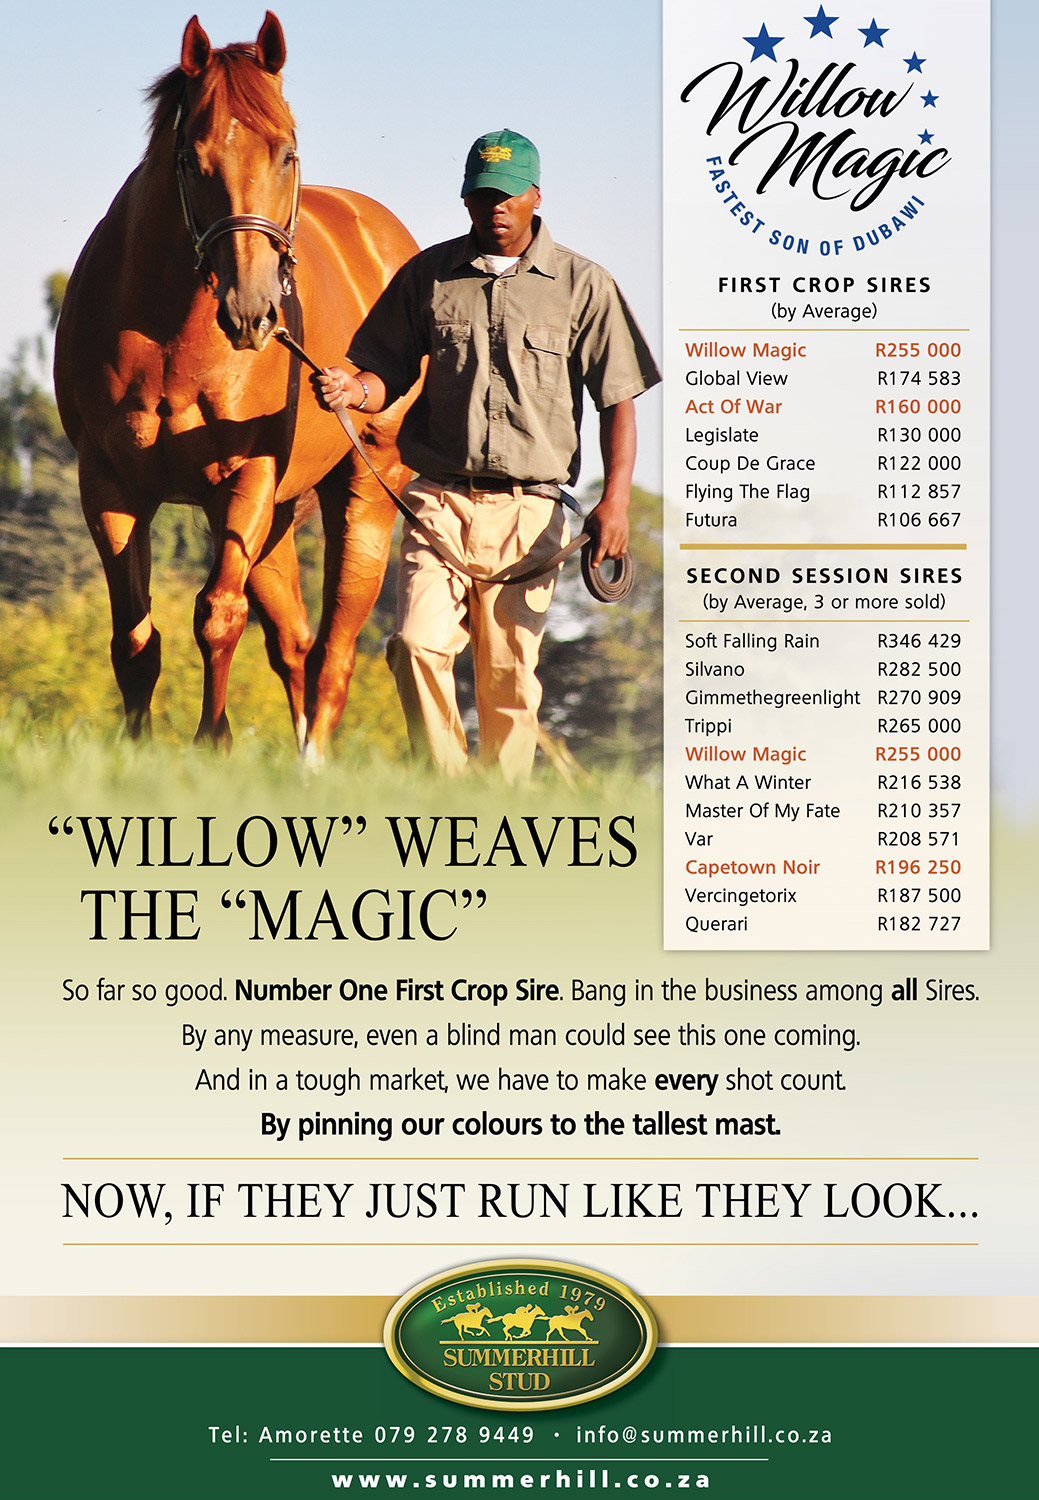 Willow Magic Stallion at the National Yearling Sale